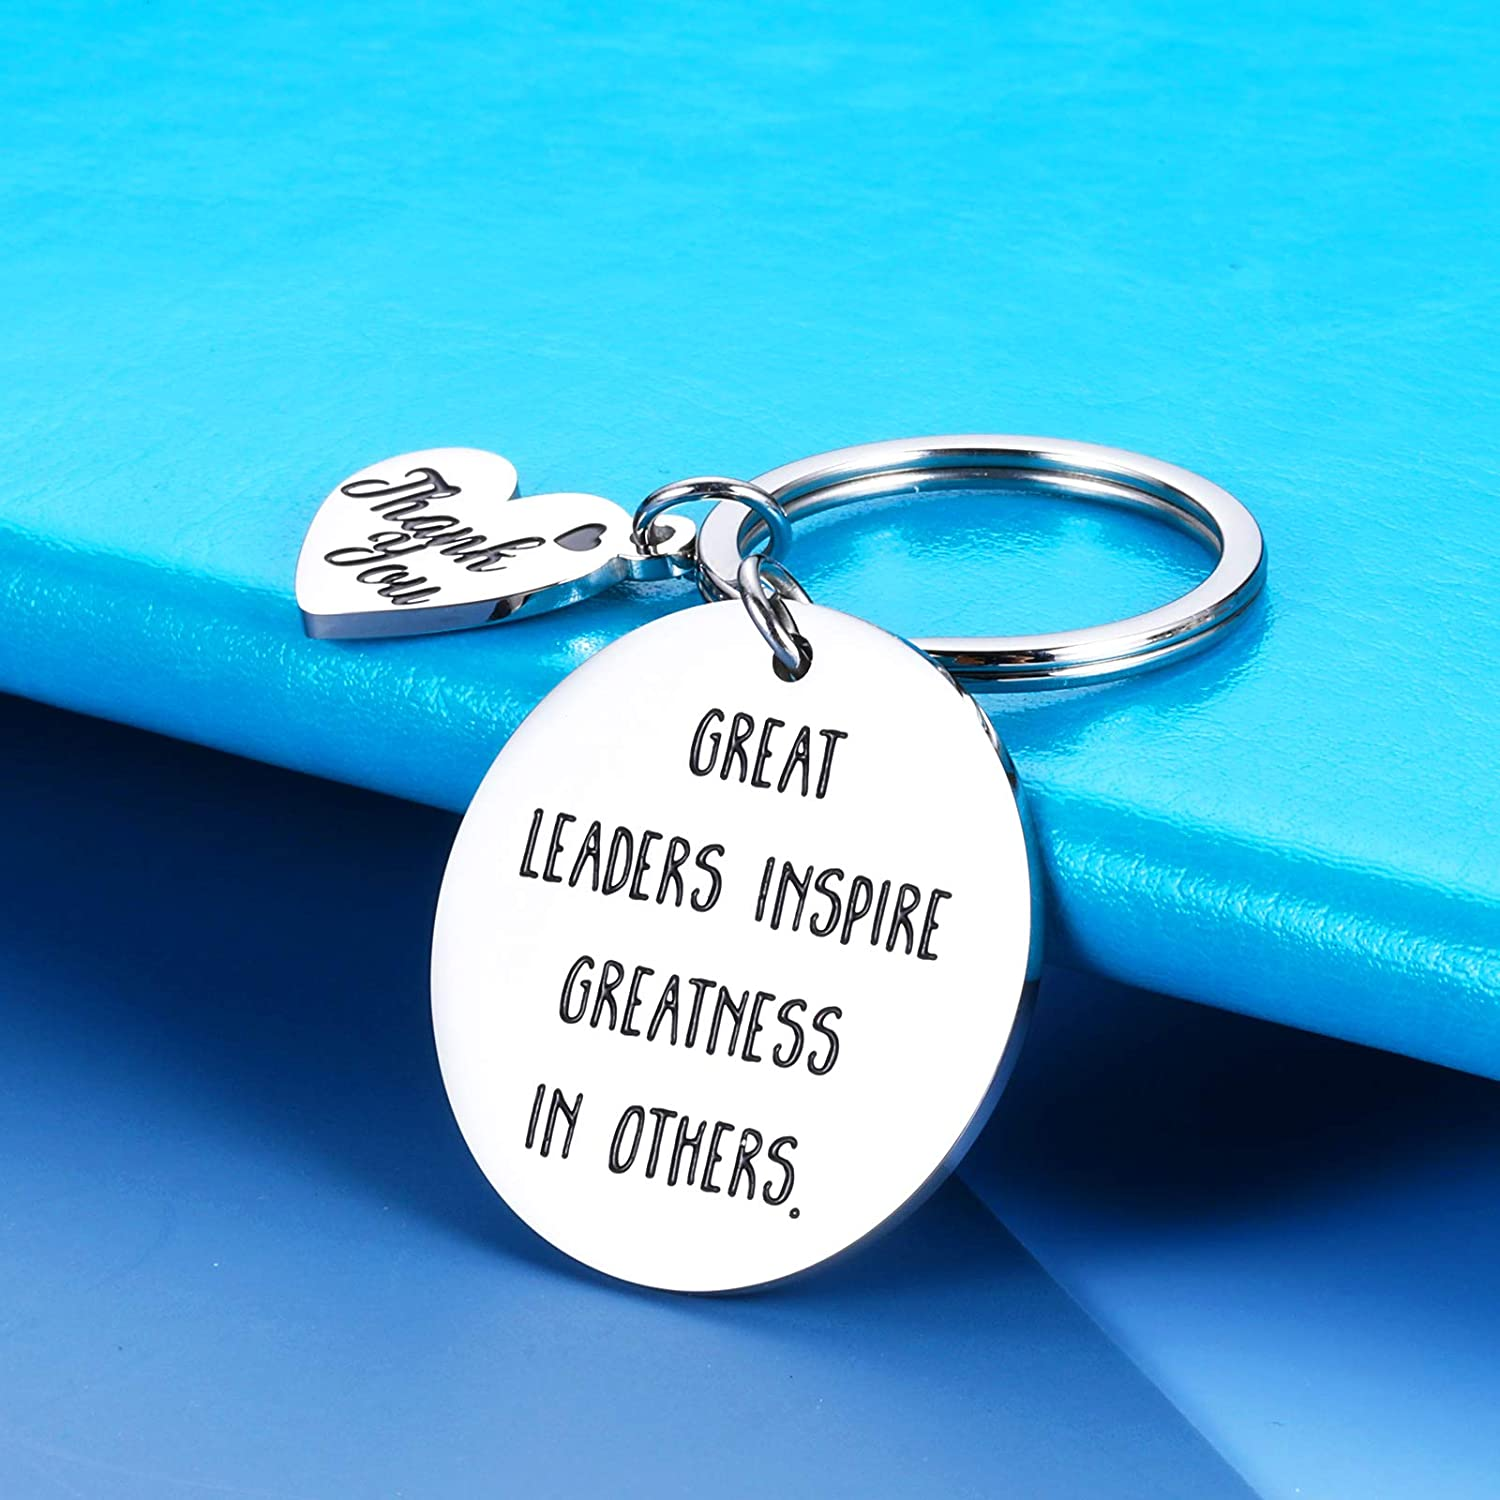 Boss Keychain Gifts for Women Men Lady Boss Leaders PM Supervisor Mentor Manager Birthday Boss Day Retirement Leaving Thank You Gifts Office Keychain for Him Her Coworker